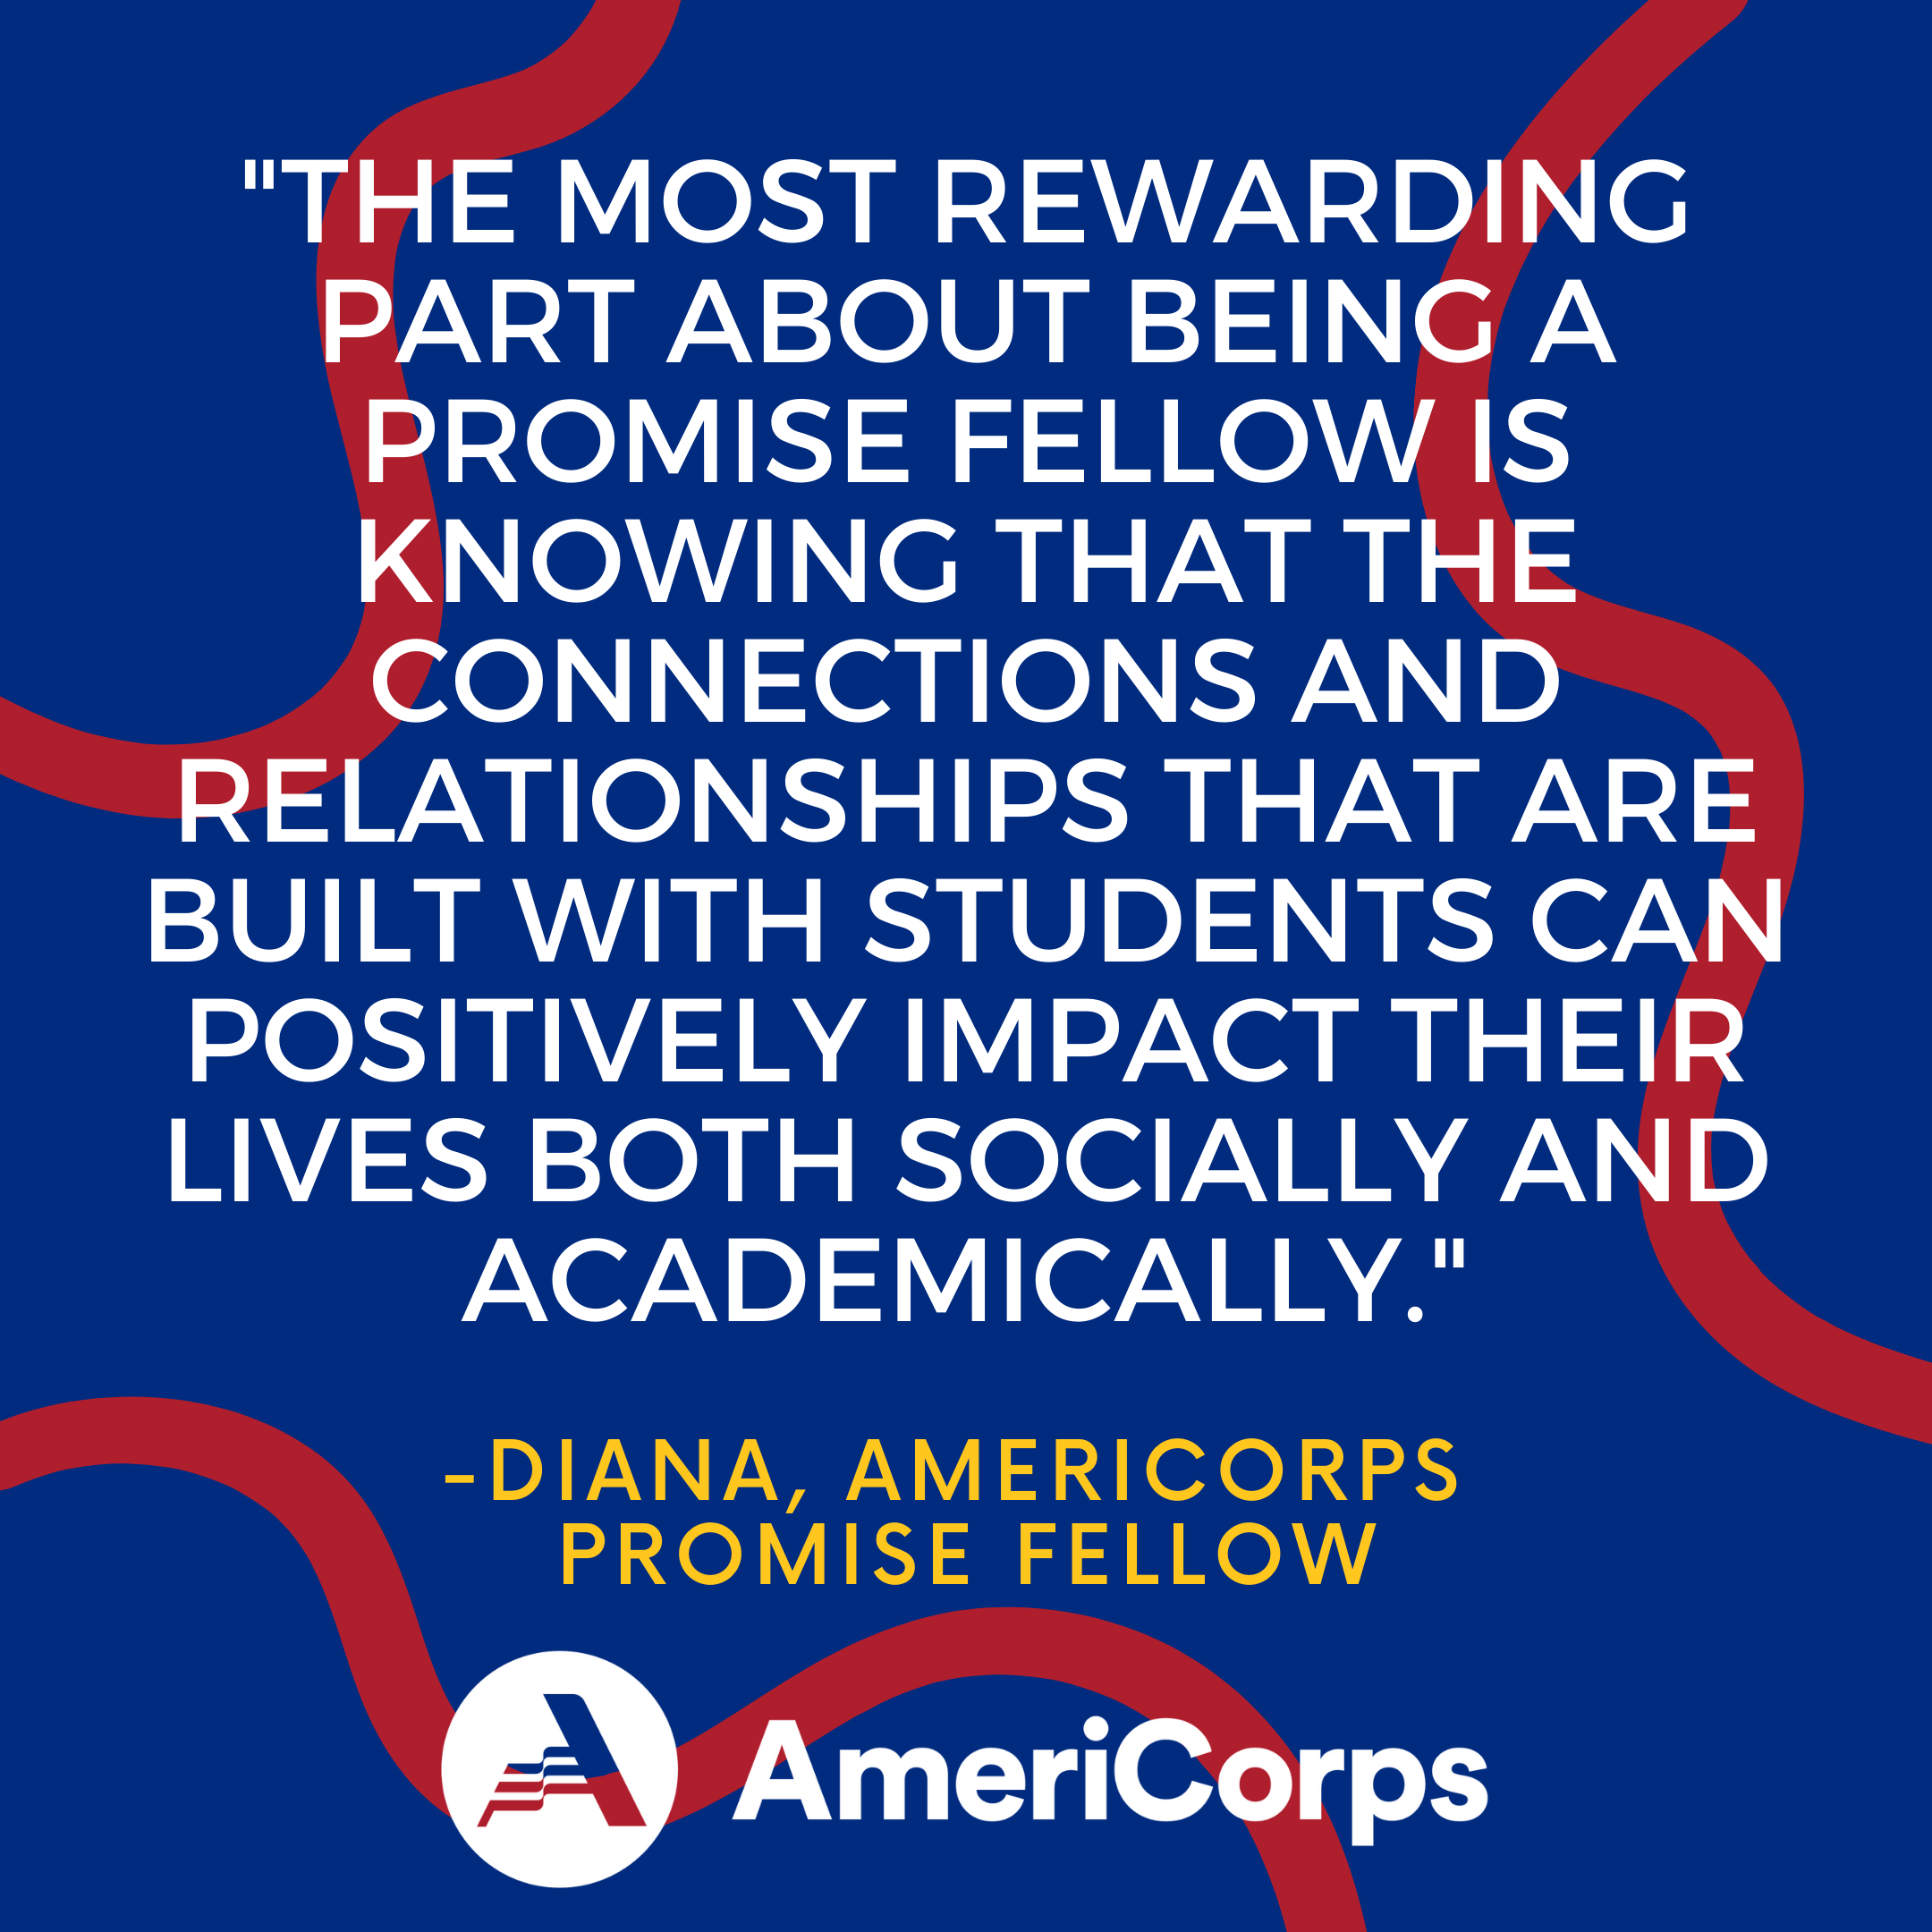 Quote from student about Promise Fellow impact